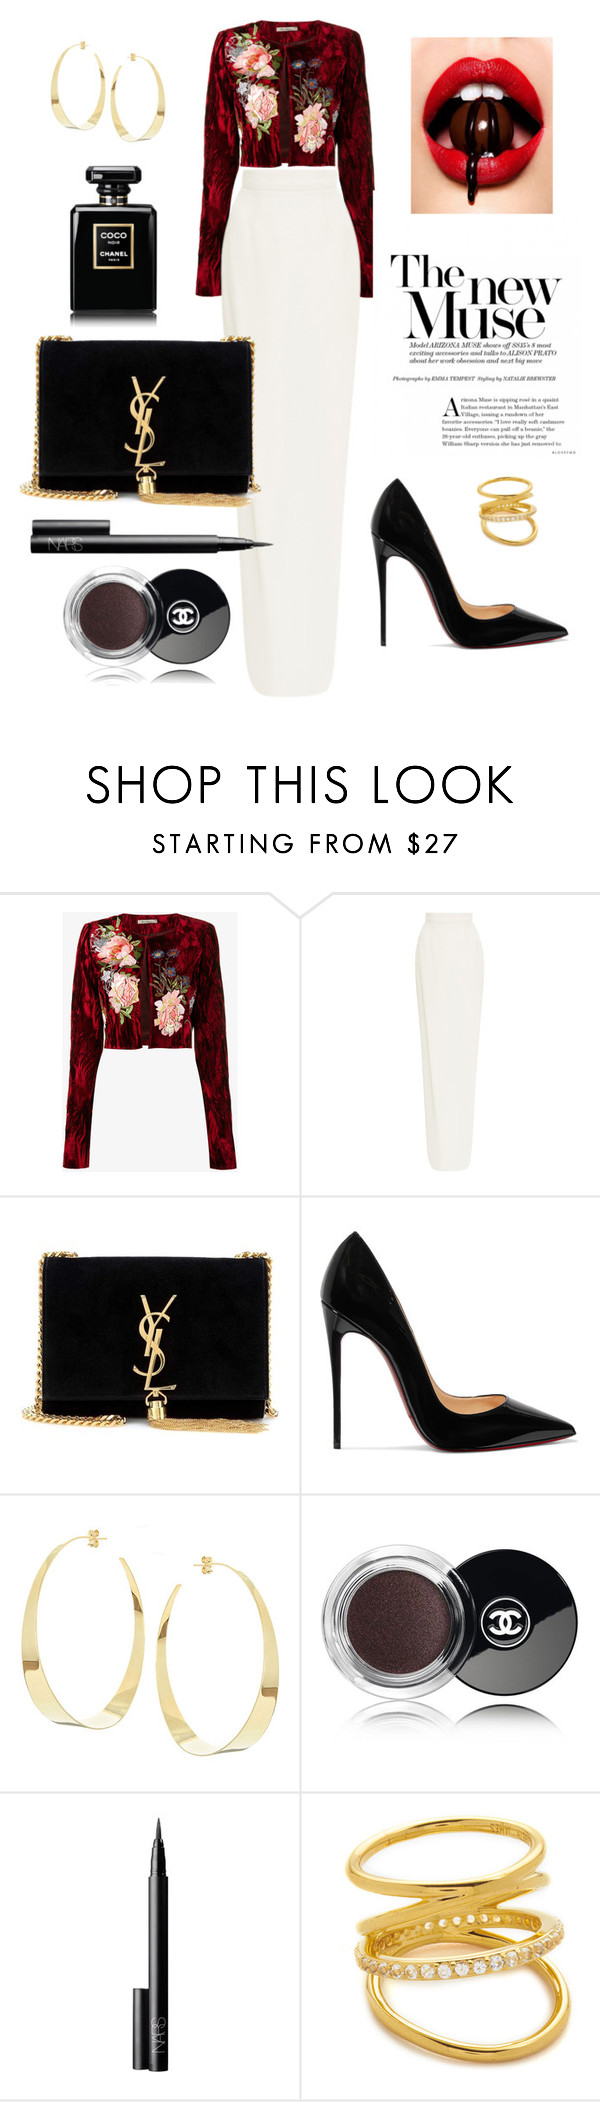 """""""The new muse"""" by norathelemon ❤ liked on Polyvore featuring Alice Archer, Monique Lhuillier, Yves Saint Laurent, Christian Louboutin, Lana, Chanel, NARS Cosmetics and Elizabeth and James"""